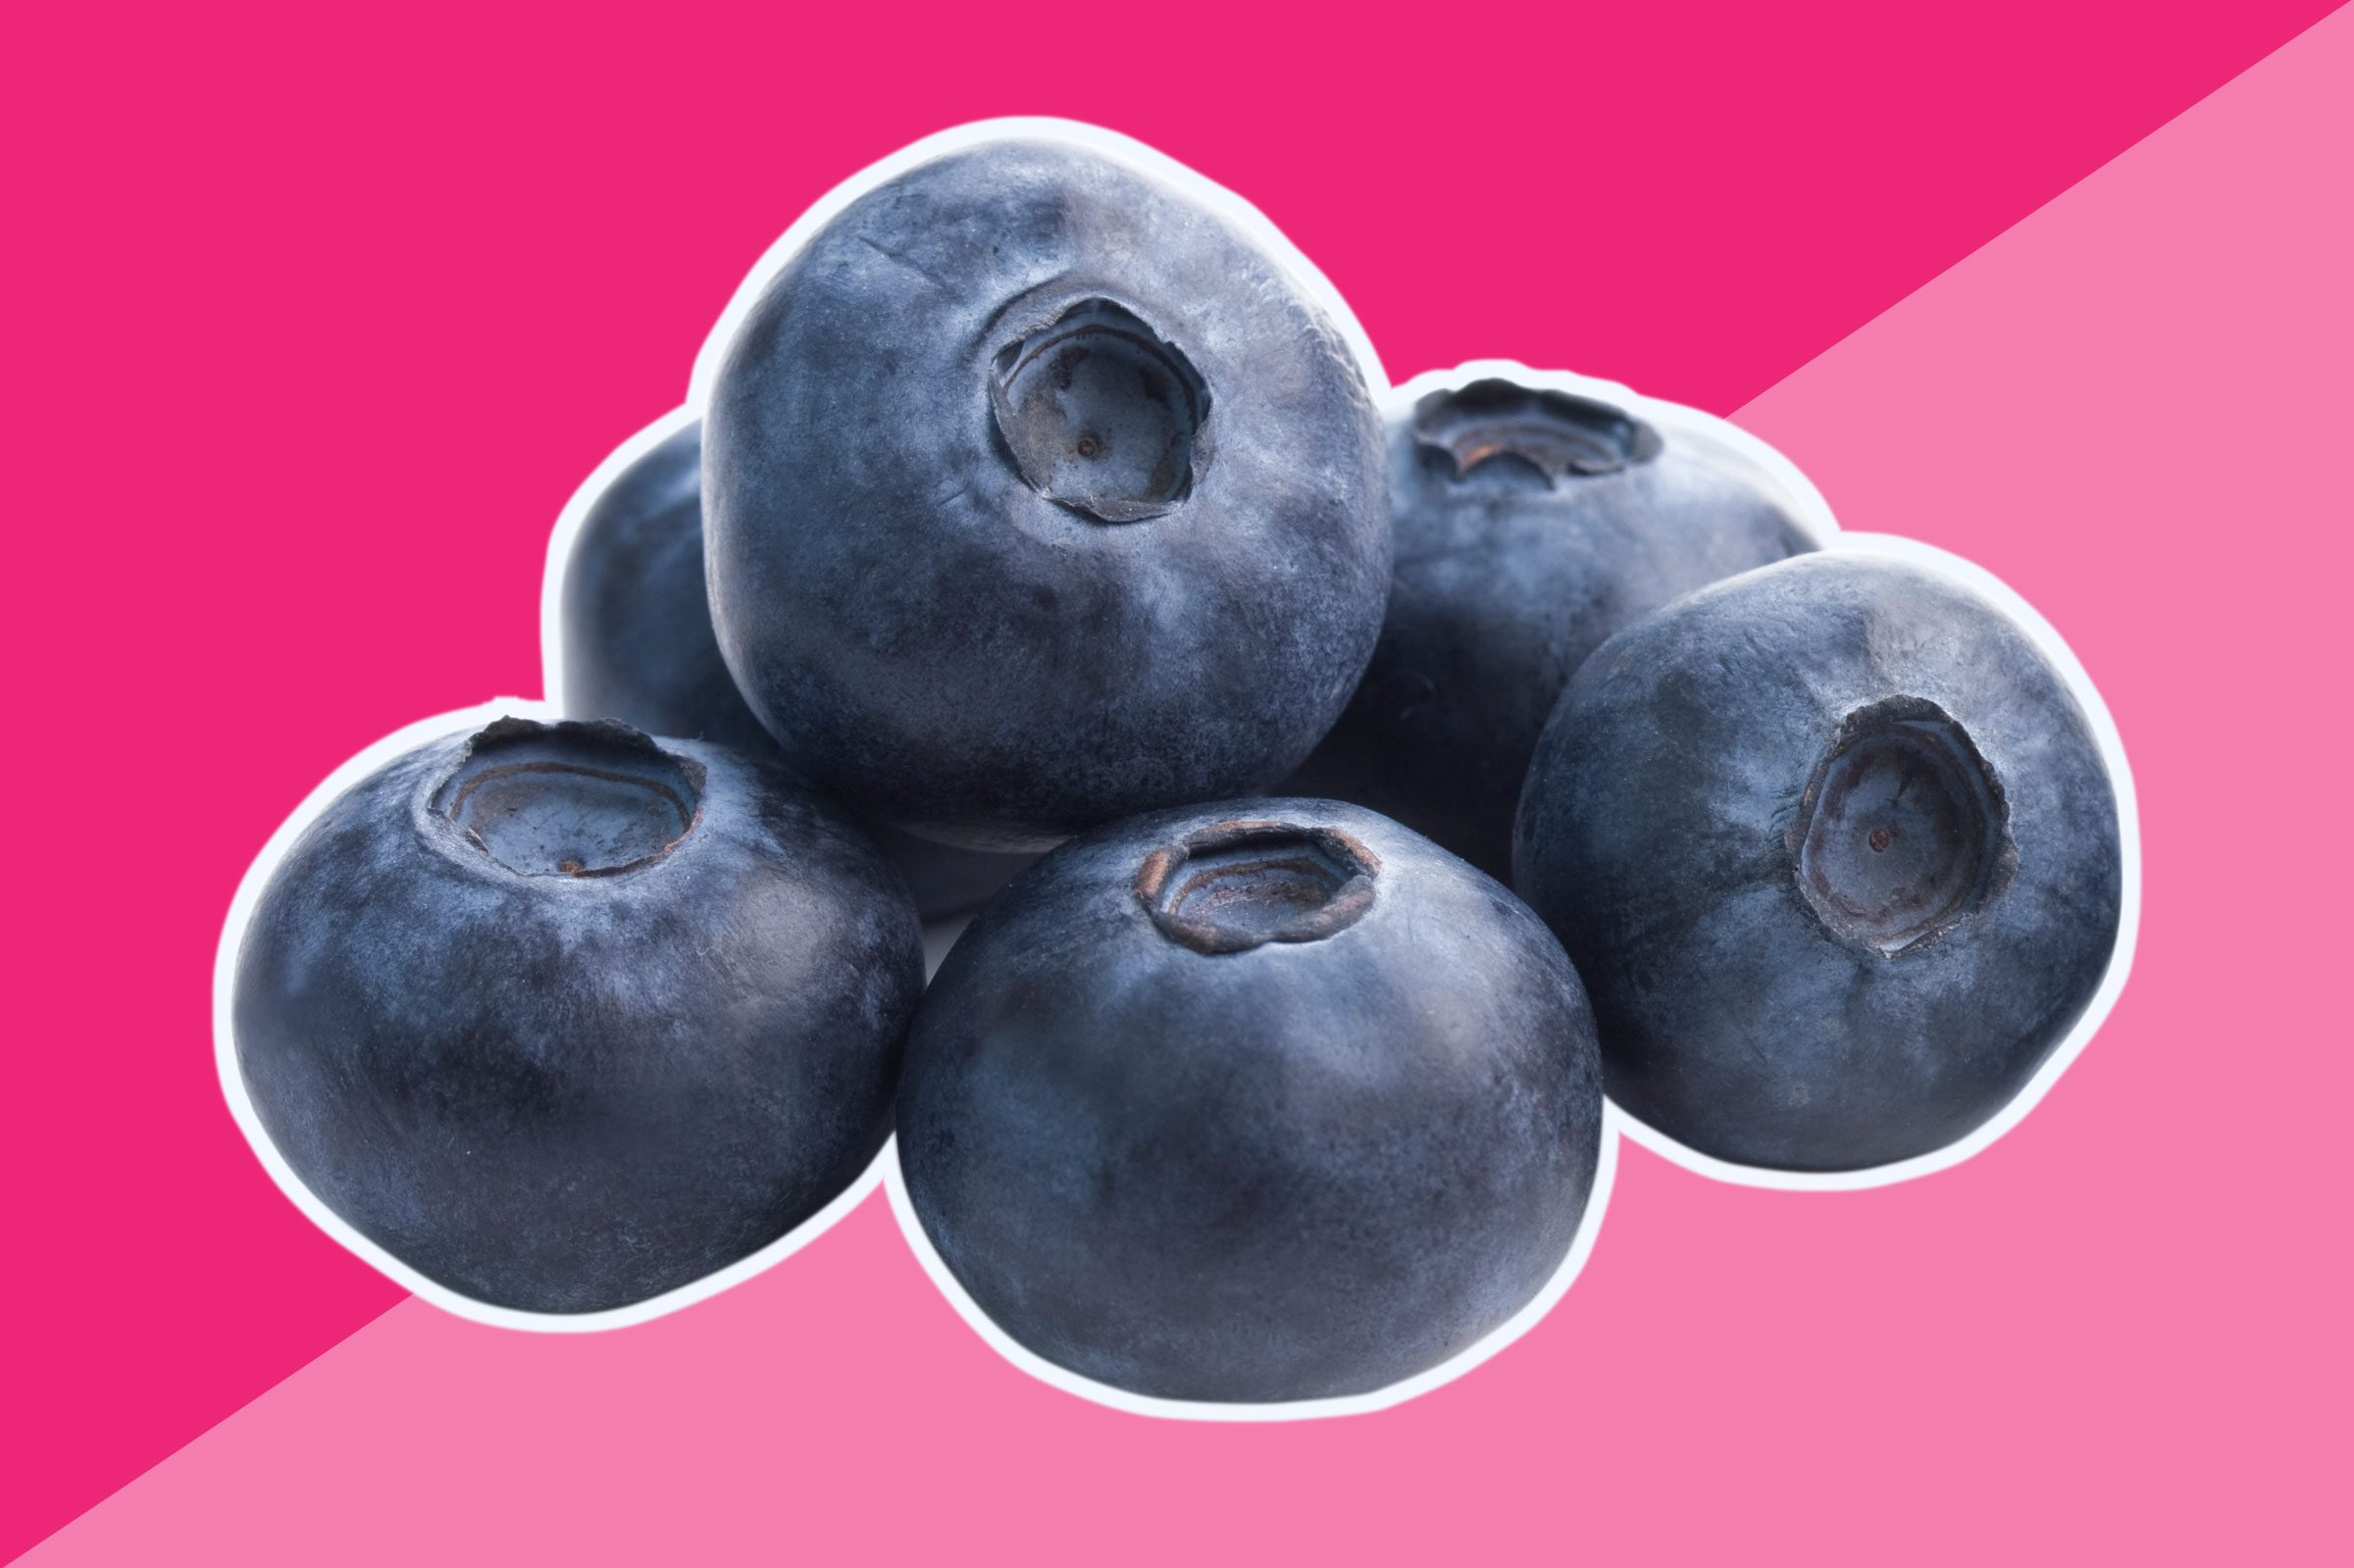 Easter ideas part 3 of 3 real deep stuff - Blueberries